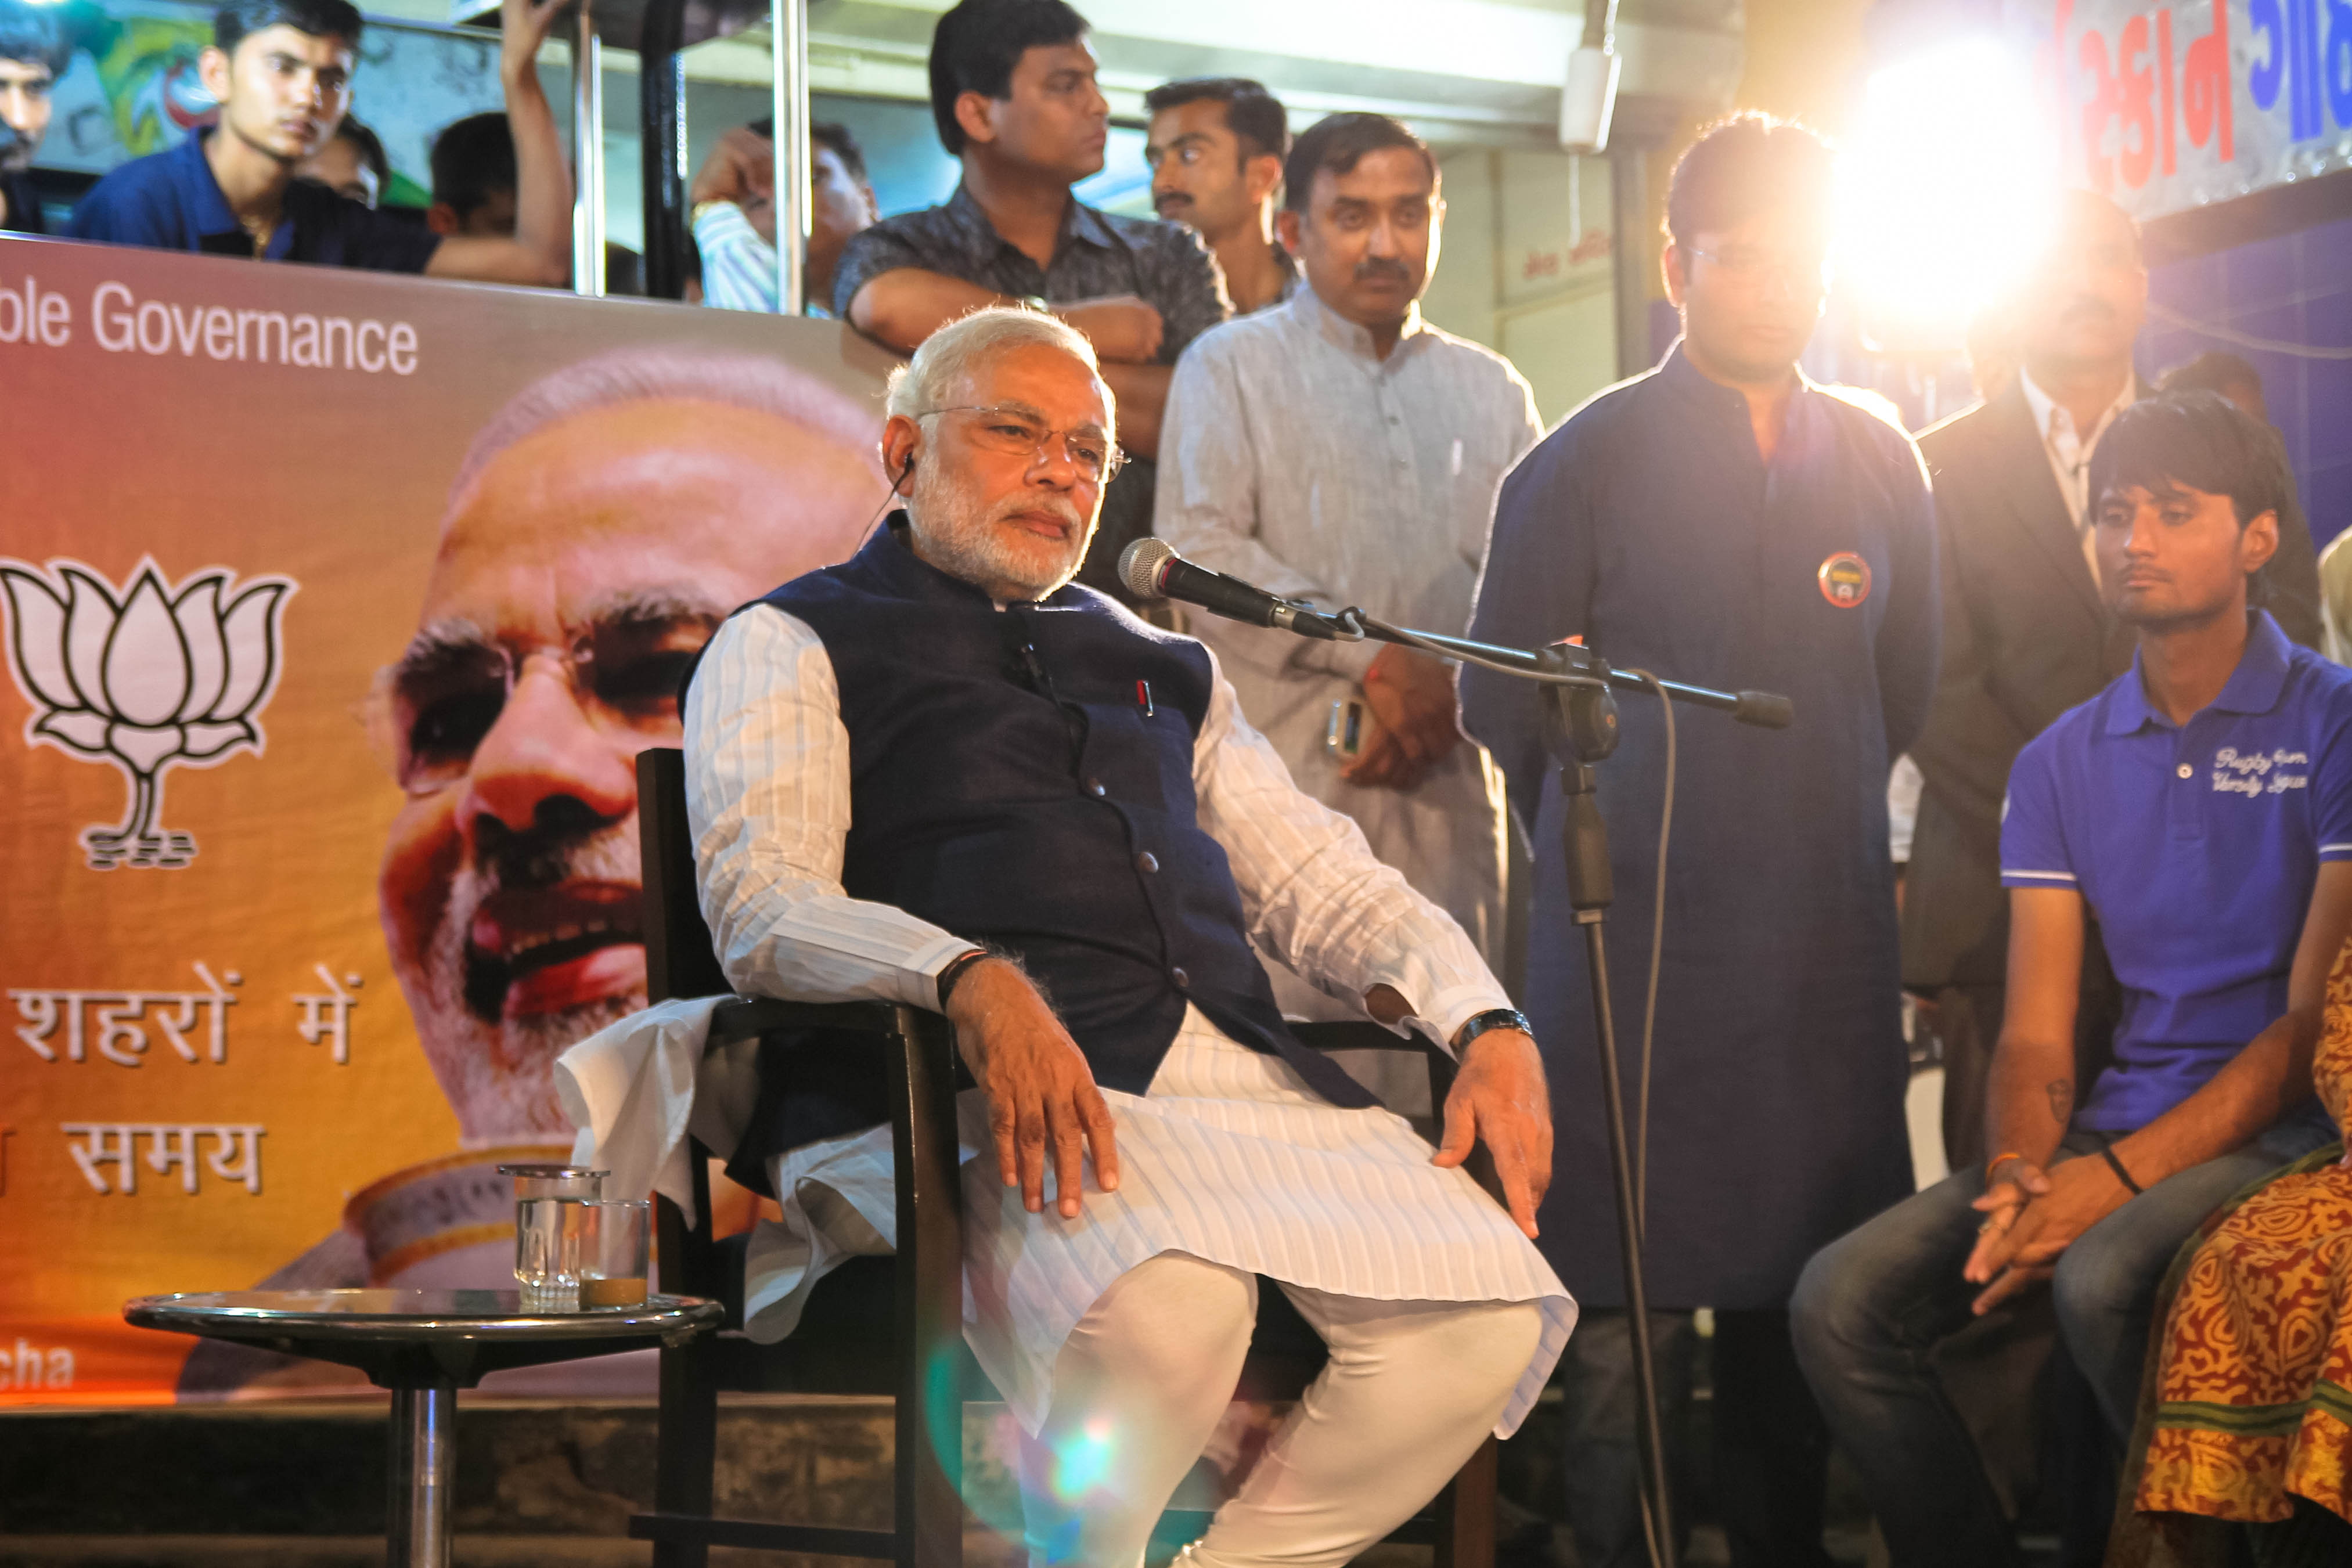 Rajesh Giri Meghnathi, the chai wallah who made the tea served to Modi, was in the background (left) for the Chai Pe Charcha, while Modi and the chai were in the foreground.